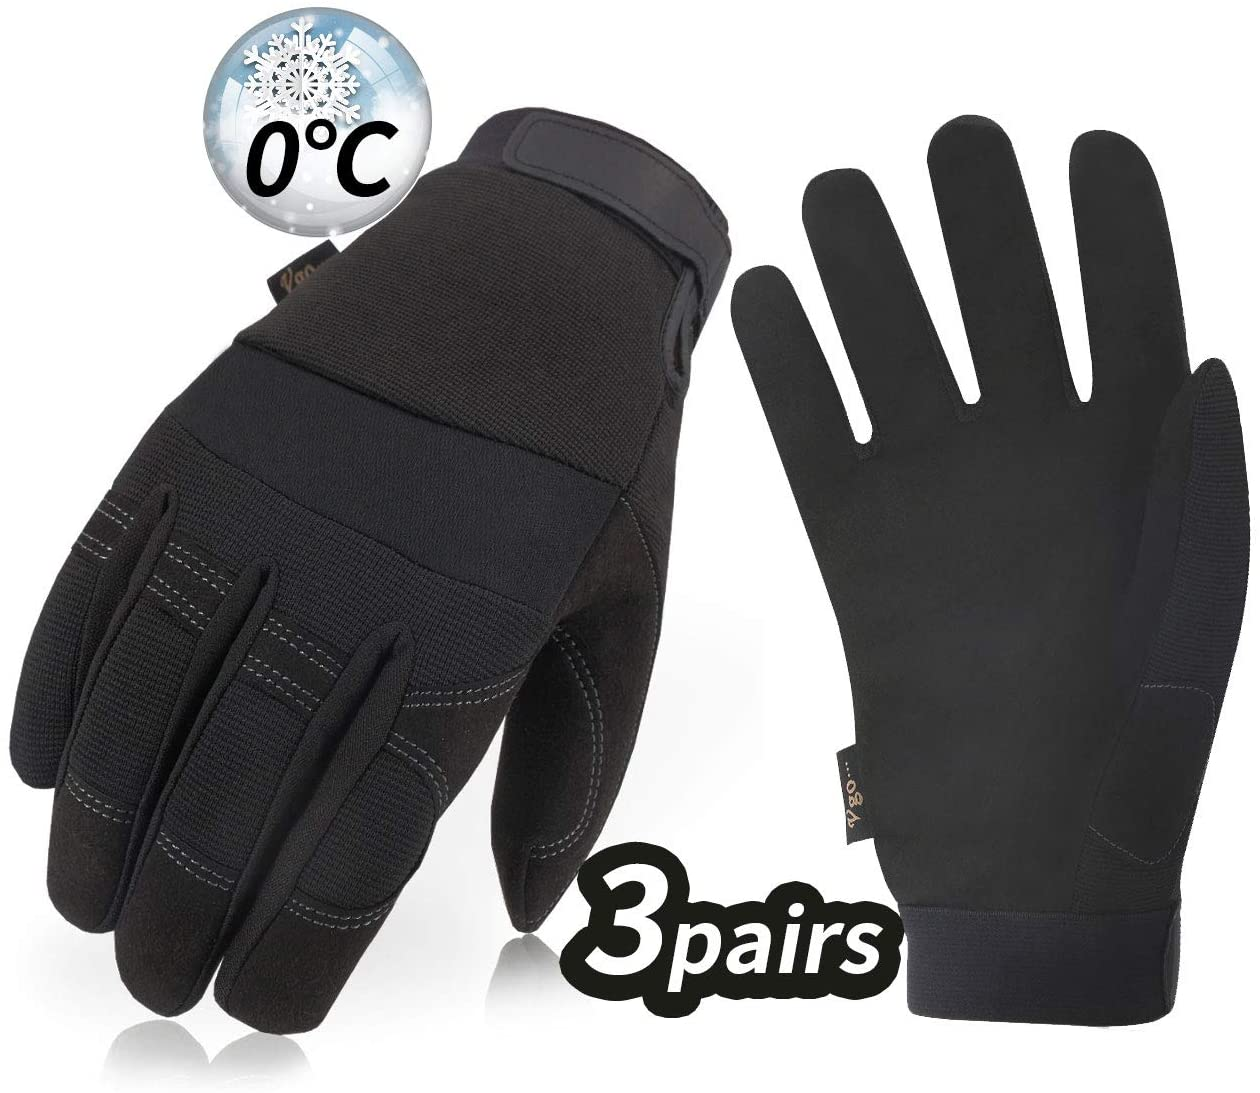 Vgo 3Pairs 32℉ or Above 3M Thinsulate C40 Lined Winter Warm Synthetic Leather Gloves(Size XL,Black,SL8270F)